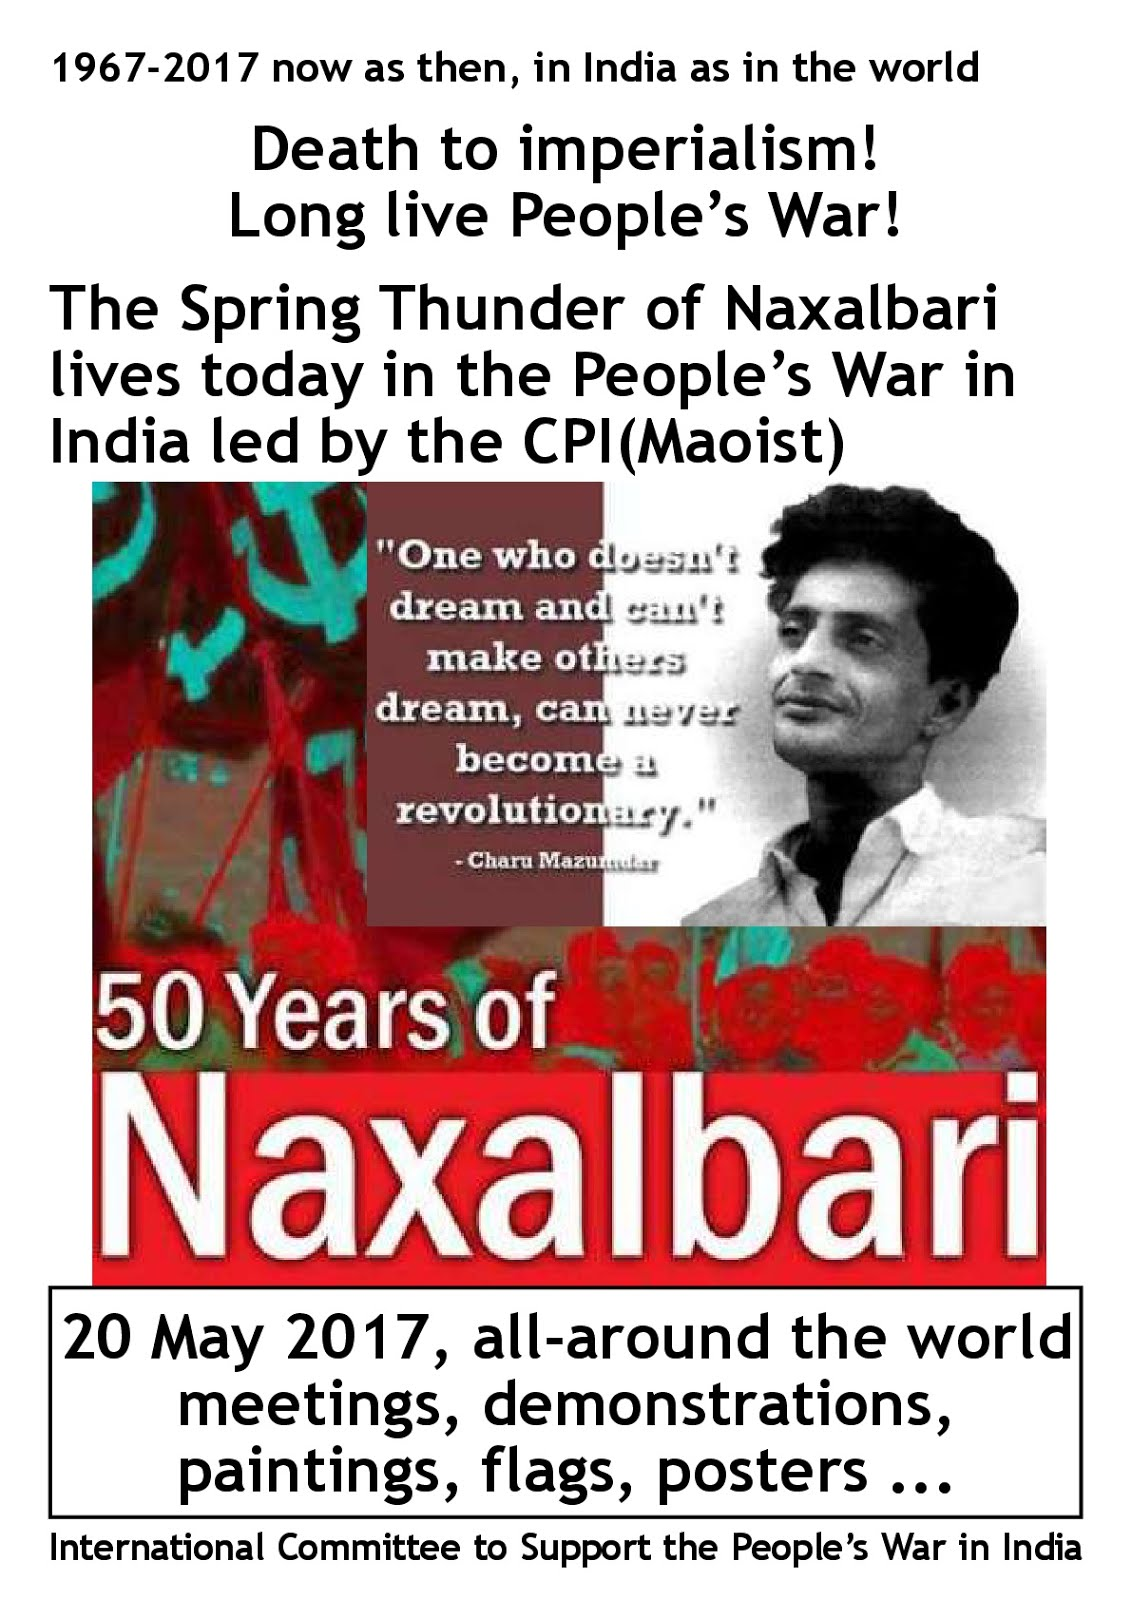 CAMPAGNA 50 ANNIVERSARIO NAXALBARI